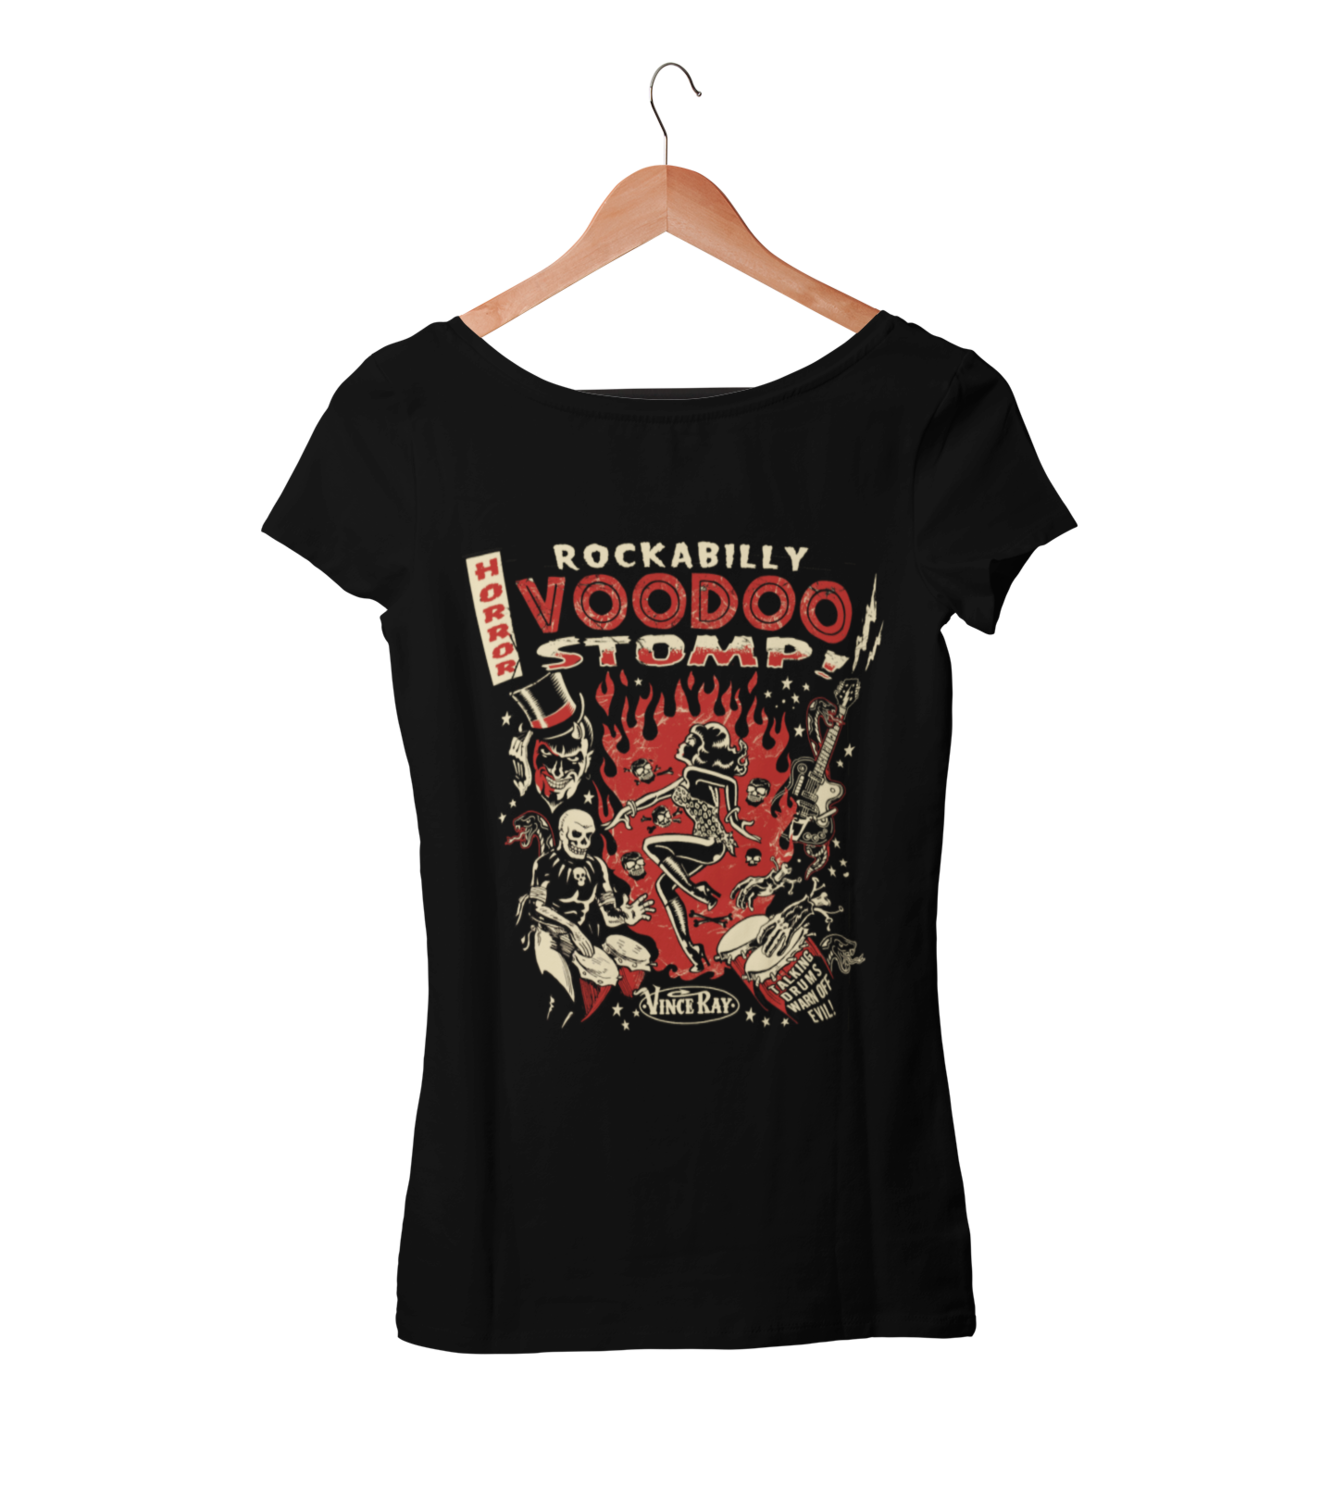 ROCKABILLY VOODOO STOMP T-SHIRT WOMAN BY VINCE RAY